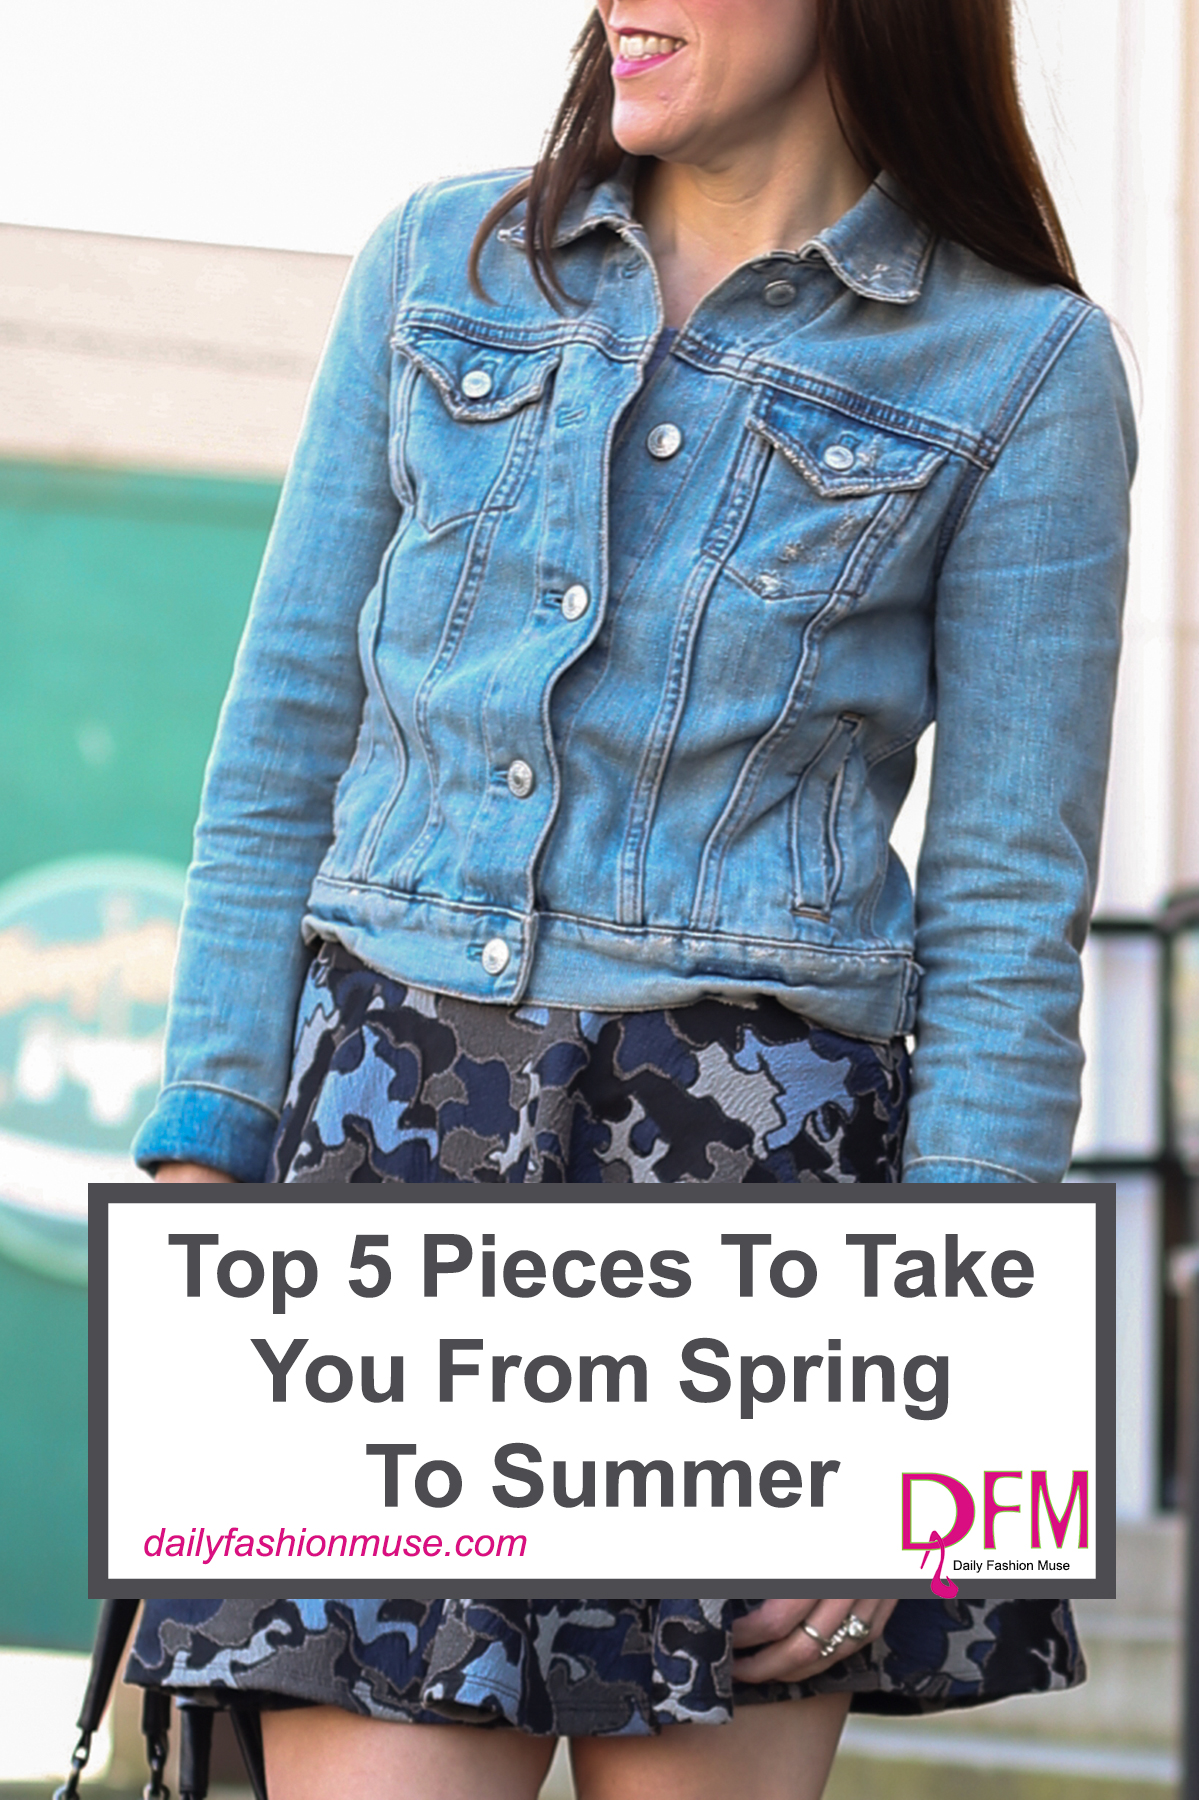 Want to know what the top 5 key pieces will be that will help you transition from spring to summer without skipping a beat? Let me break them down for you. Daily Fashion Muse